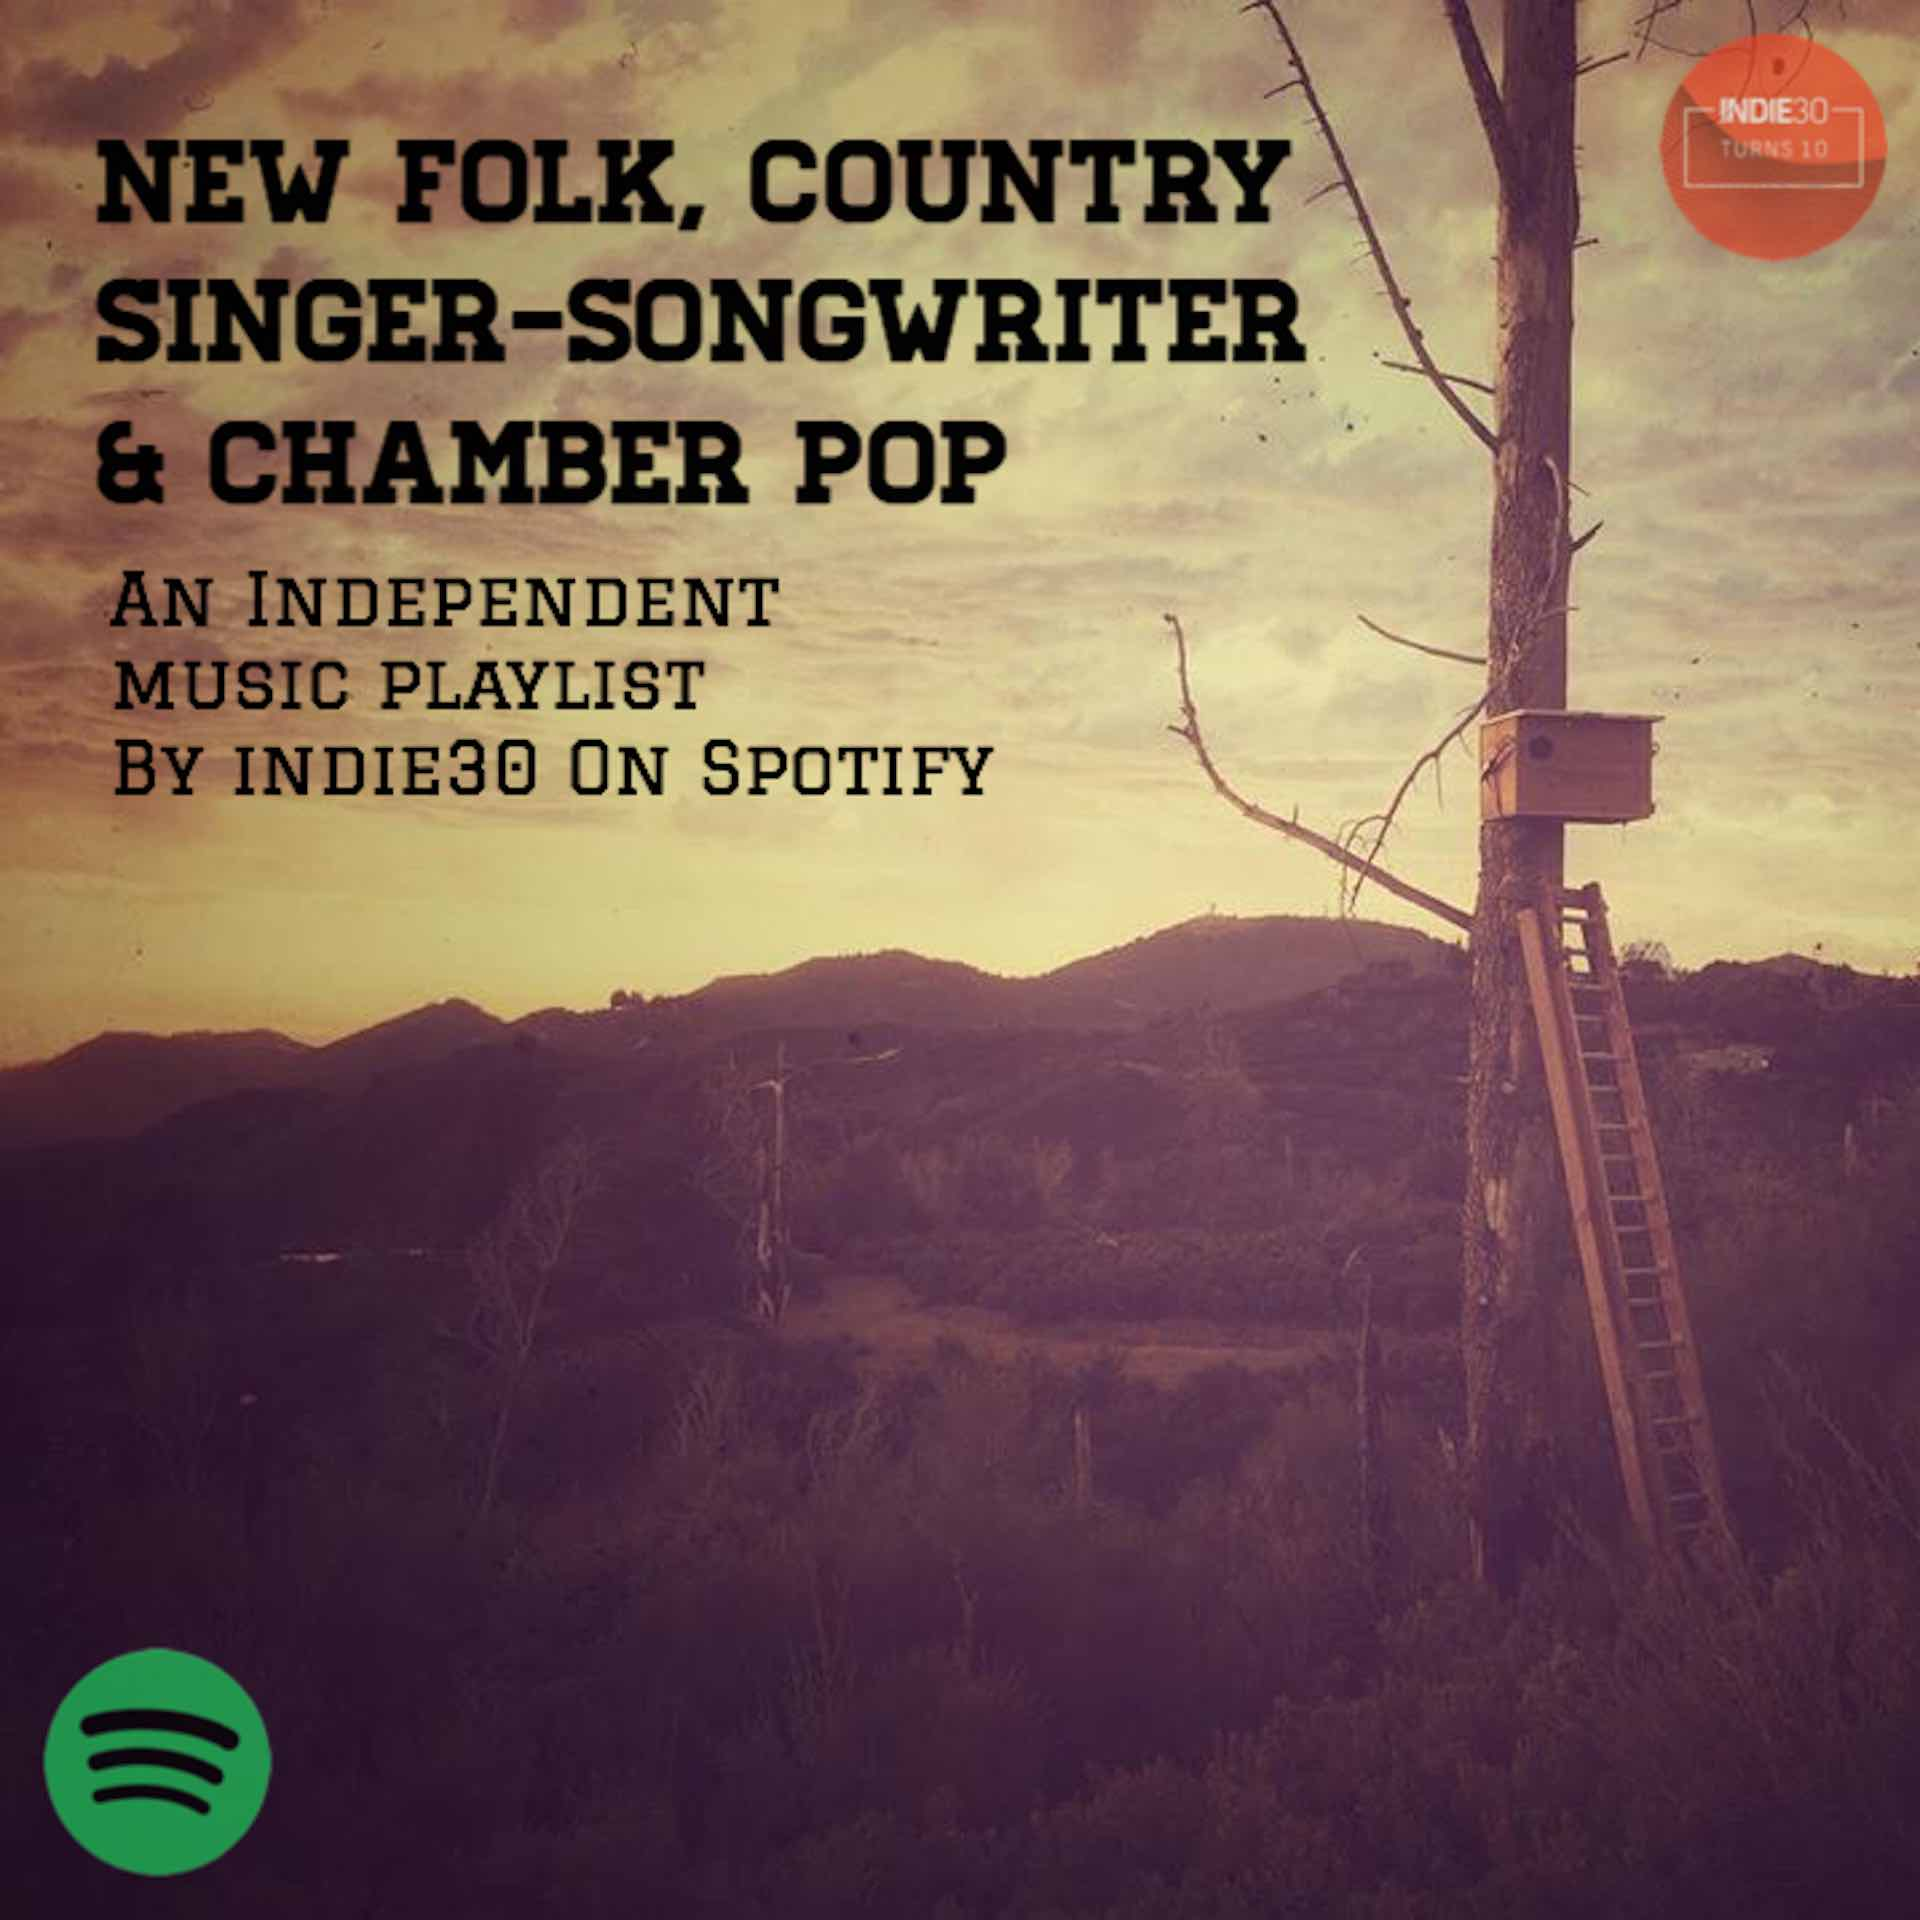 Indie30 NEW FOLK COUNTRY SINGER SONGWRITER & CHAMBER POP